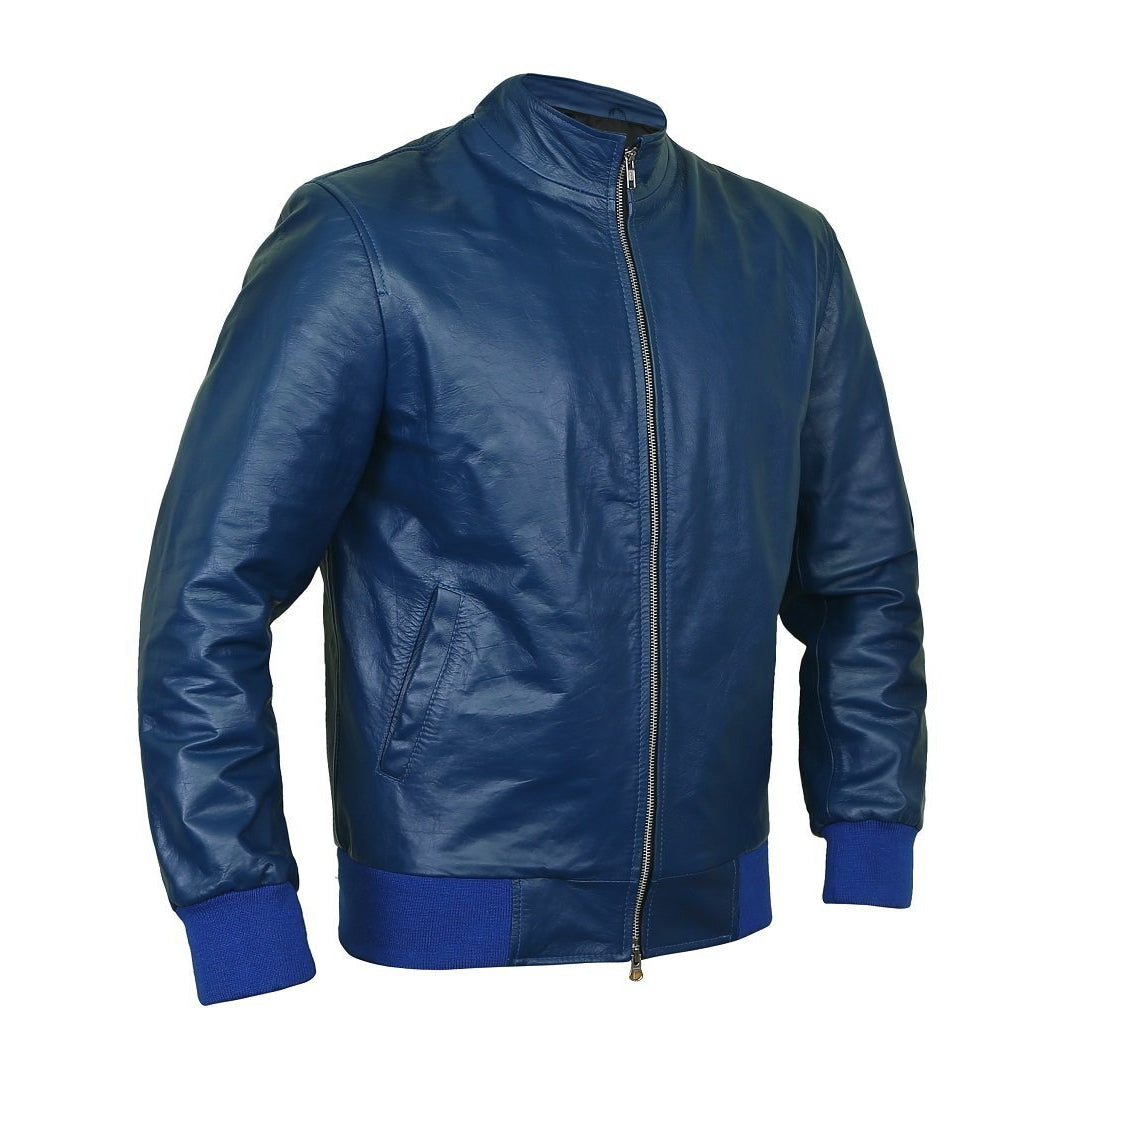 Edgy Navy-Blue Bomber Flight Leather Jacket